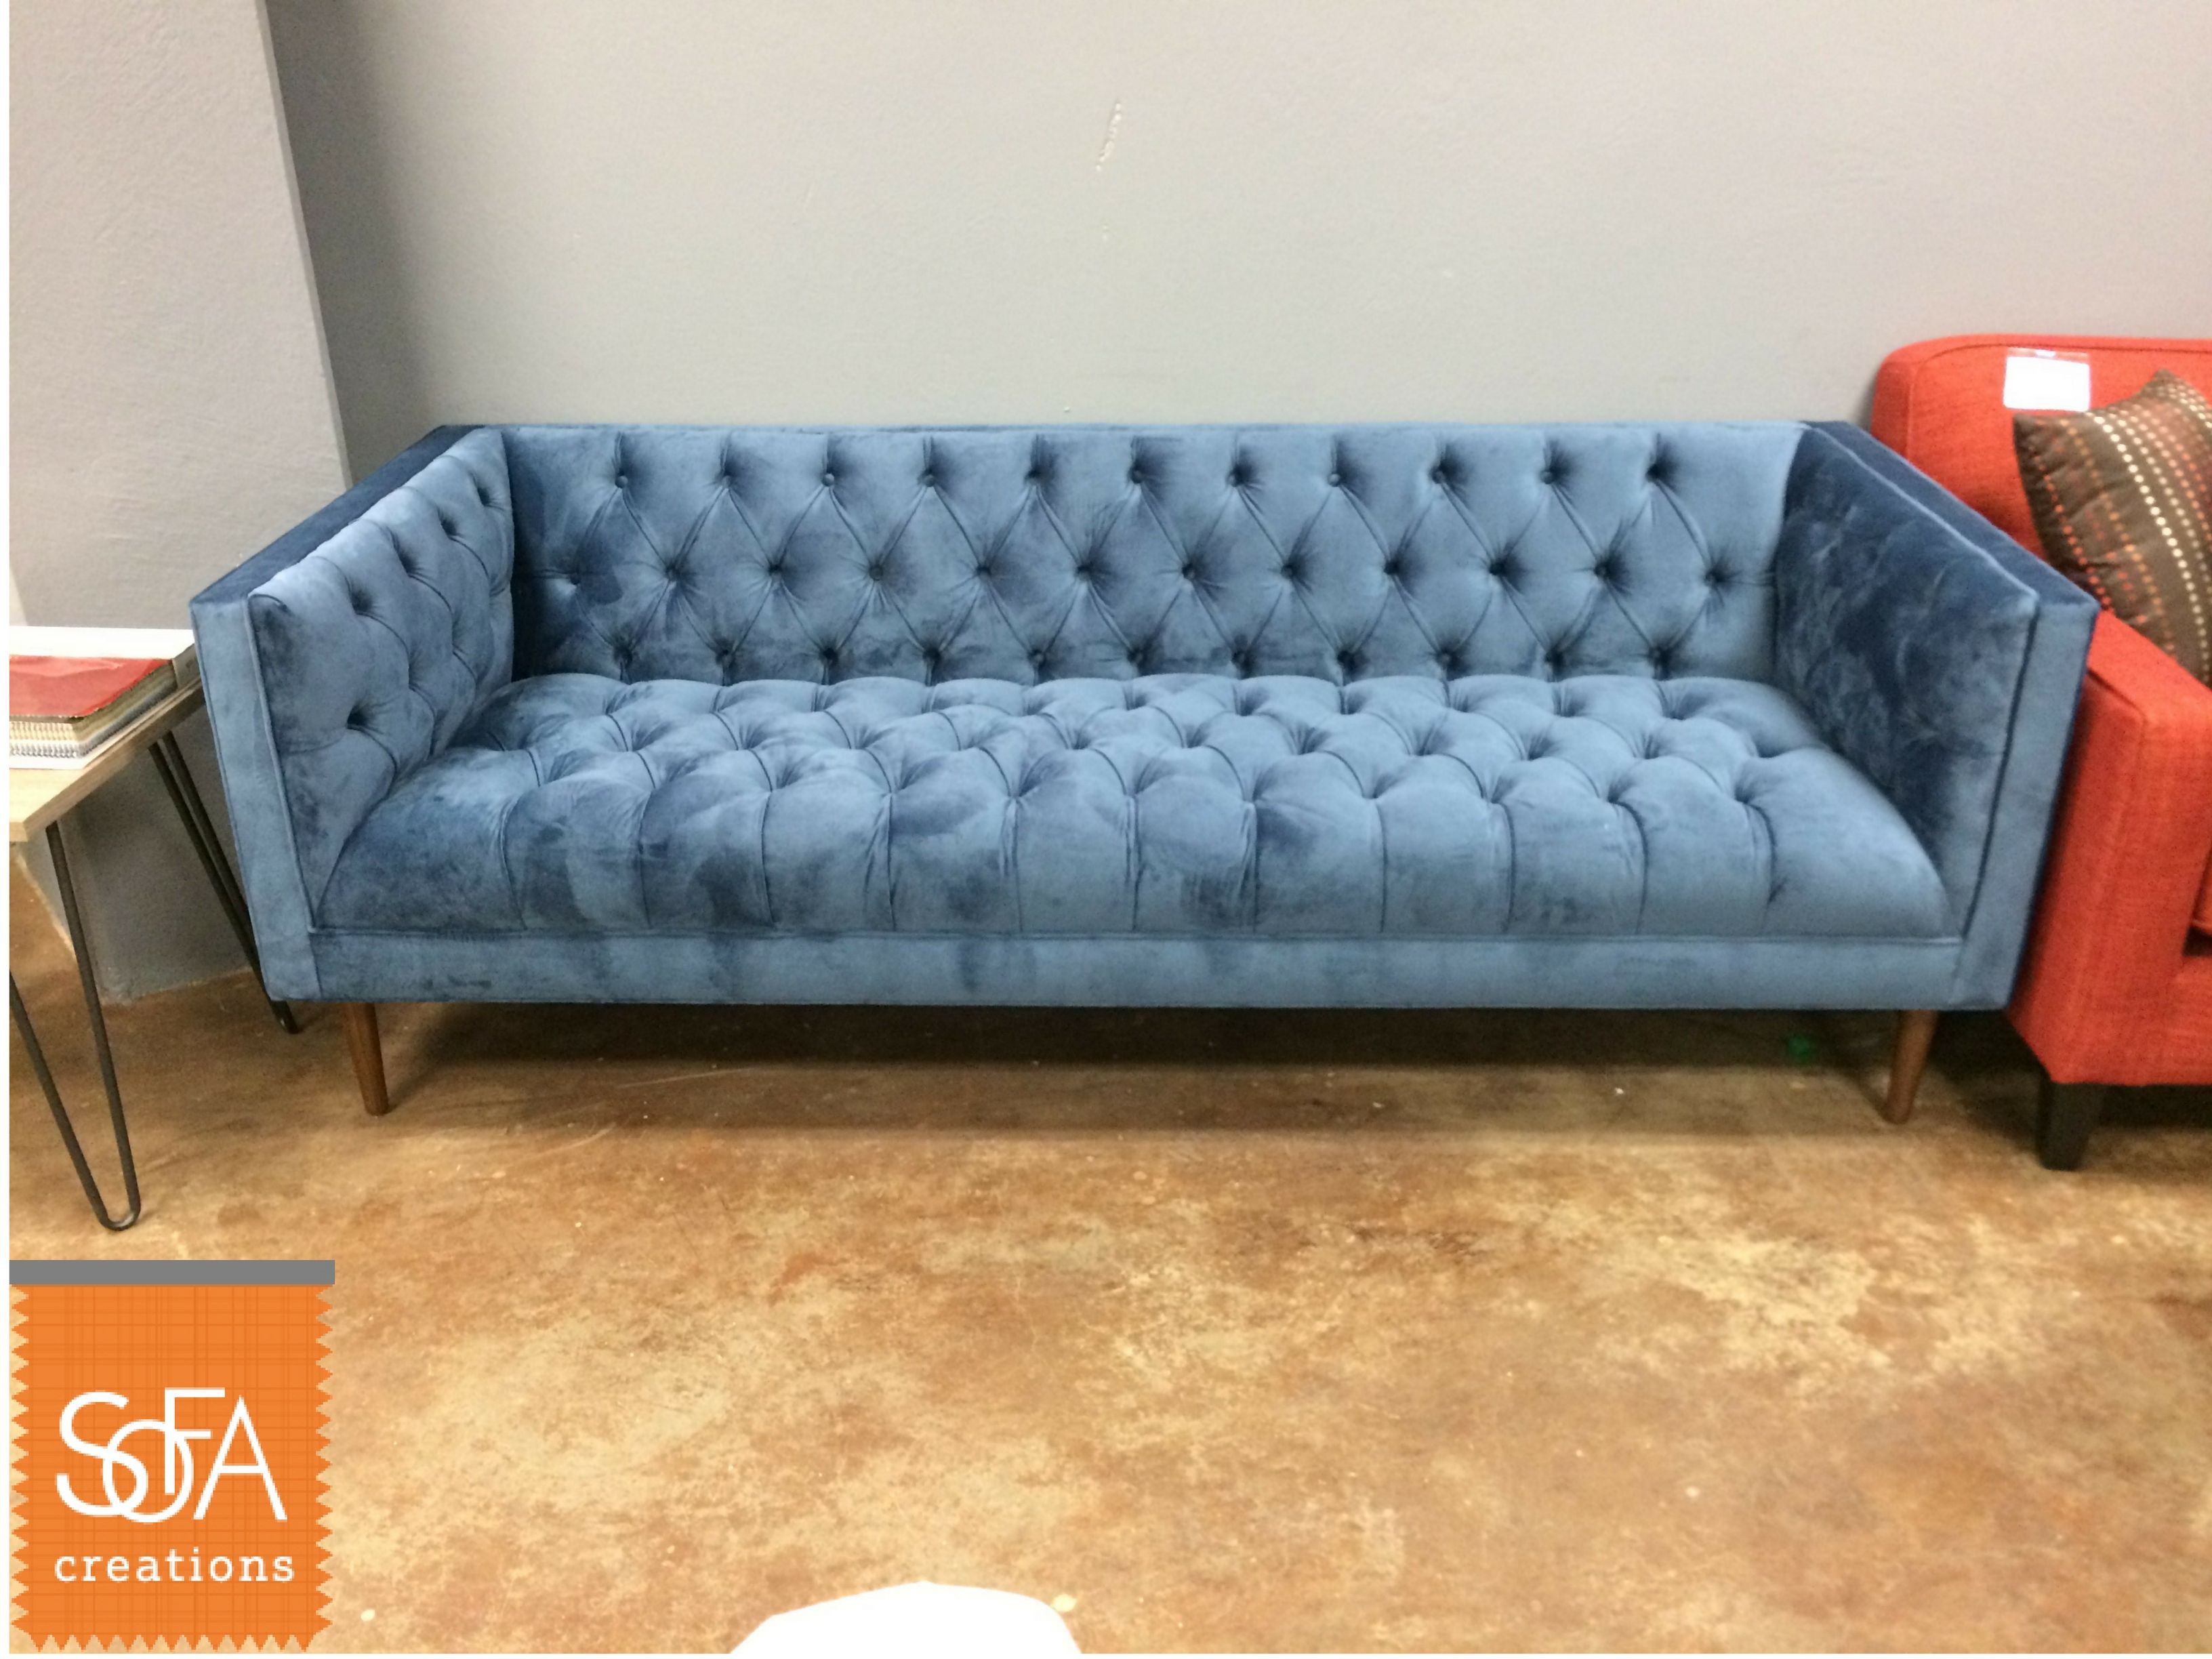 The Charleston Sofa Is Our Modernized Take On A Chesterfield Come